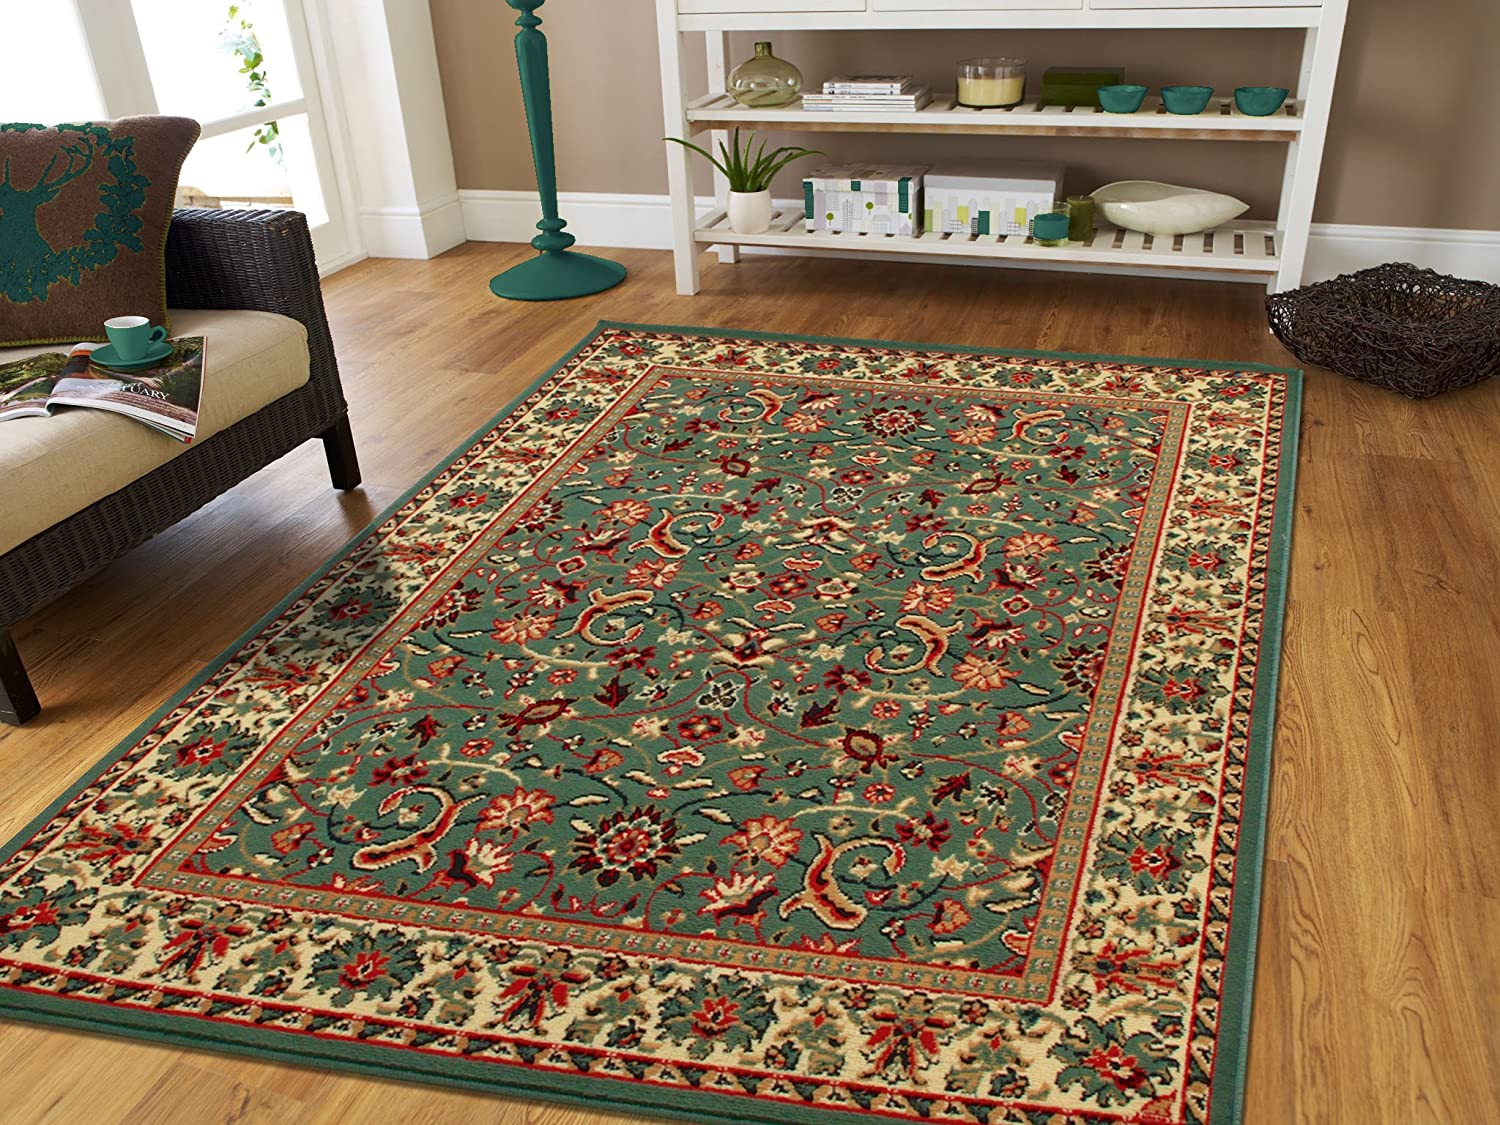 Amazon.com: Large Area Rug Oriental Carpet 8x11 Living Room Rugs ...